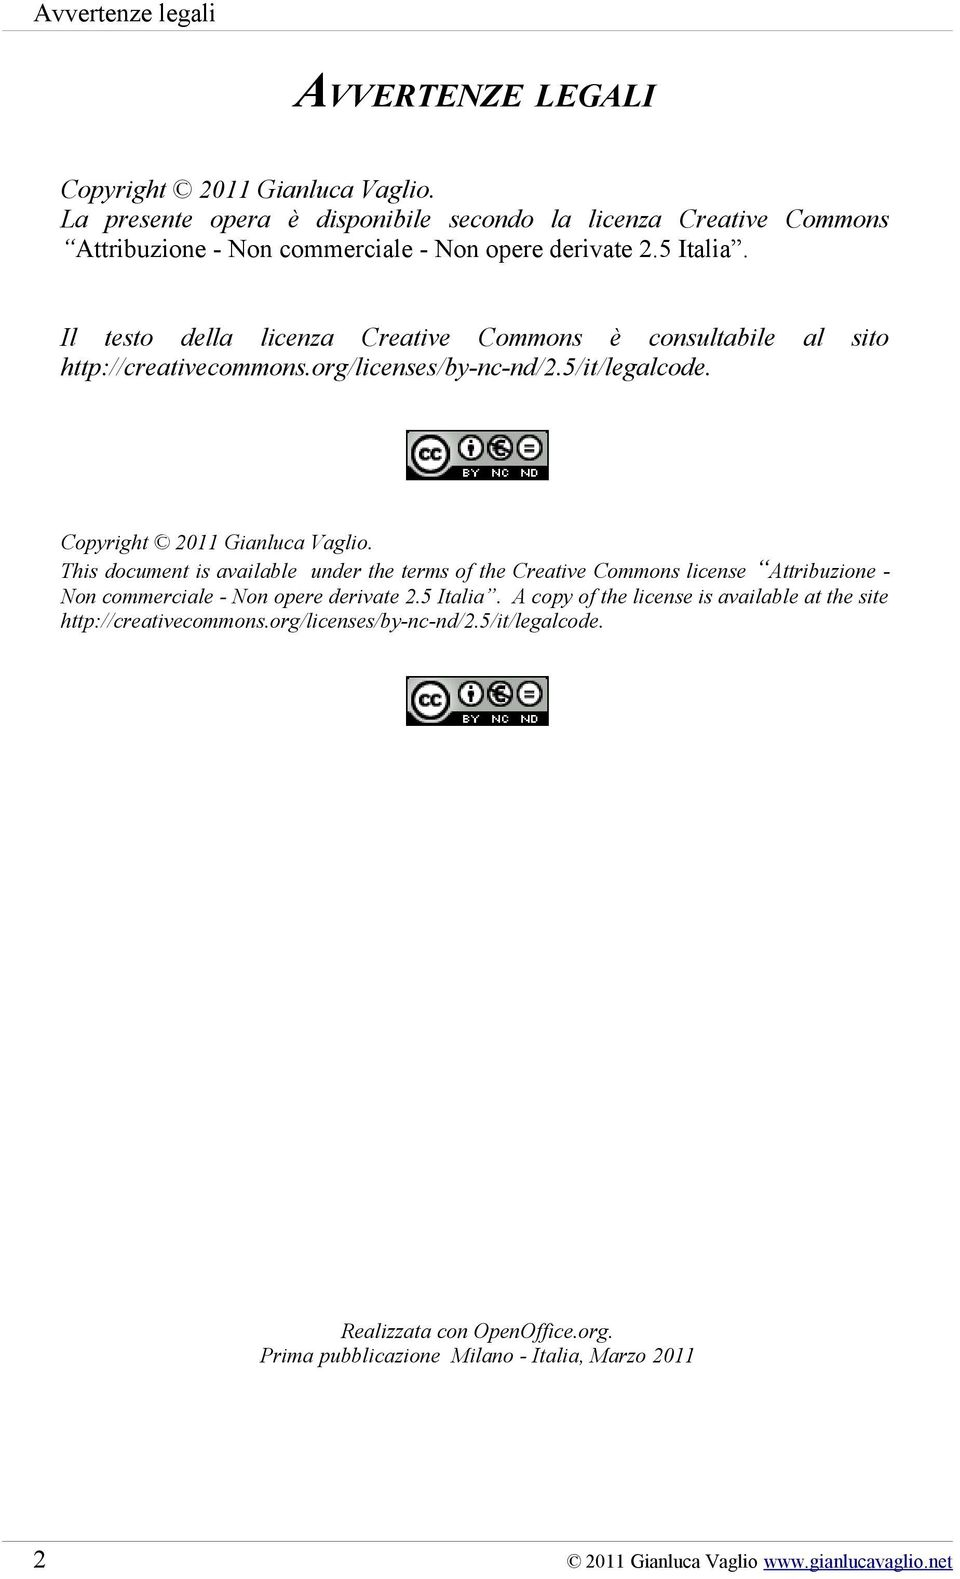 Il testo della licenza Creative Commons è consultabile al sito http://creativecommons.org/licenses/by-nc-nd/2.5/it/legalcode. Copyright 2011 Gianluca Vaglio.